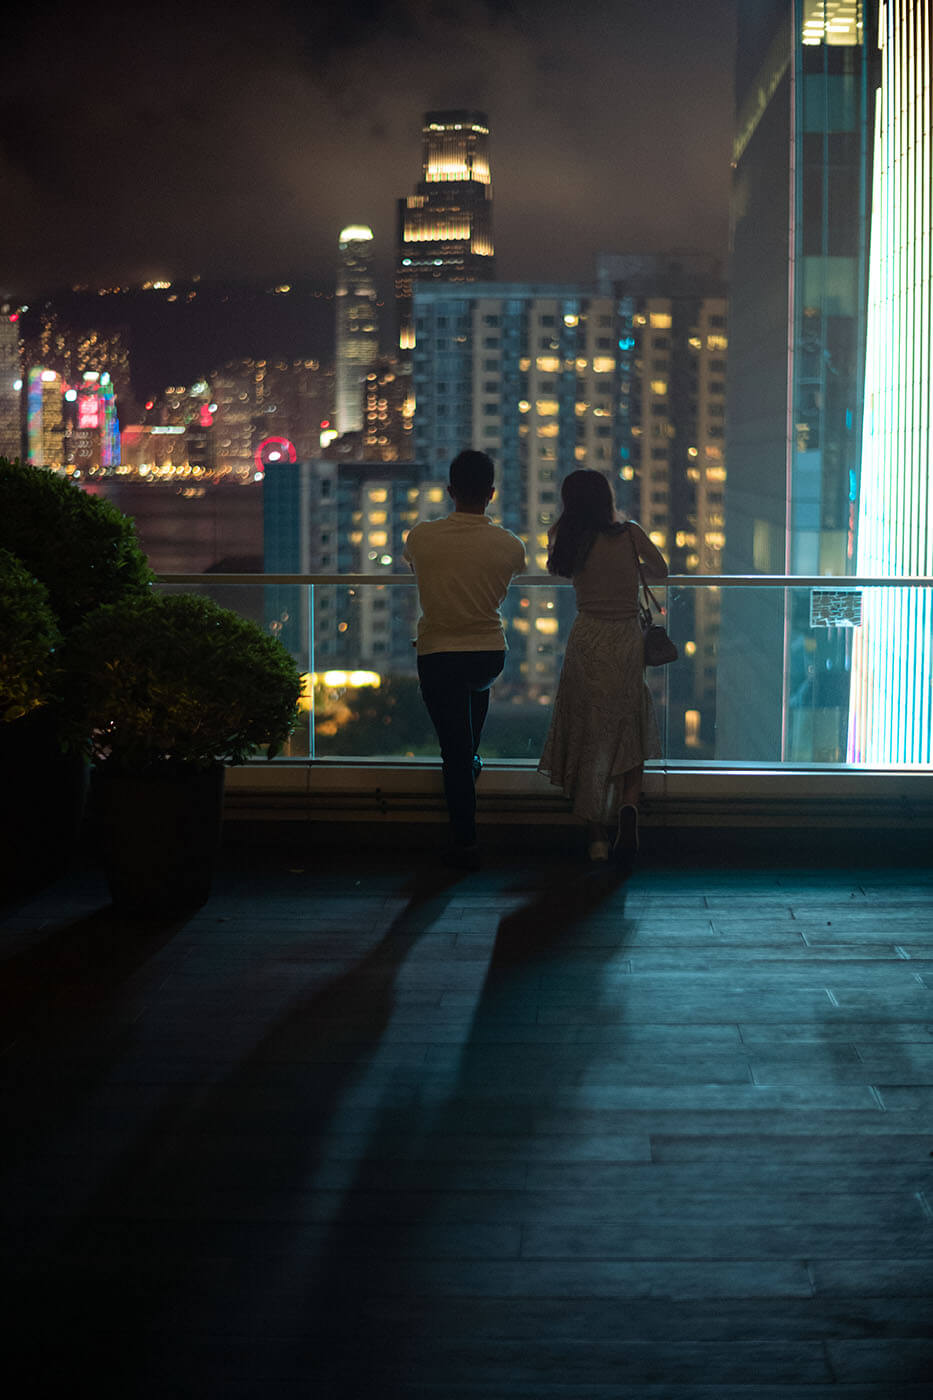 New-reissue-Noctilux-50mm-50-f1.2-1.2-asph-aspherical-heritage-rare-edition-fast-lens-Leica-Comparison-Compare-digital-M-rangefinder-M10P-M10-Bokeh-night-hong-kong-couple-standing-spinning